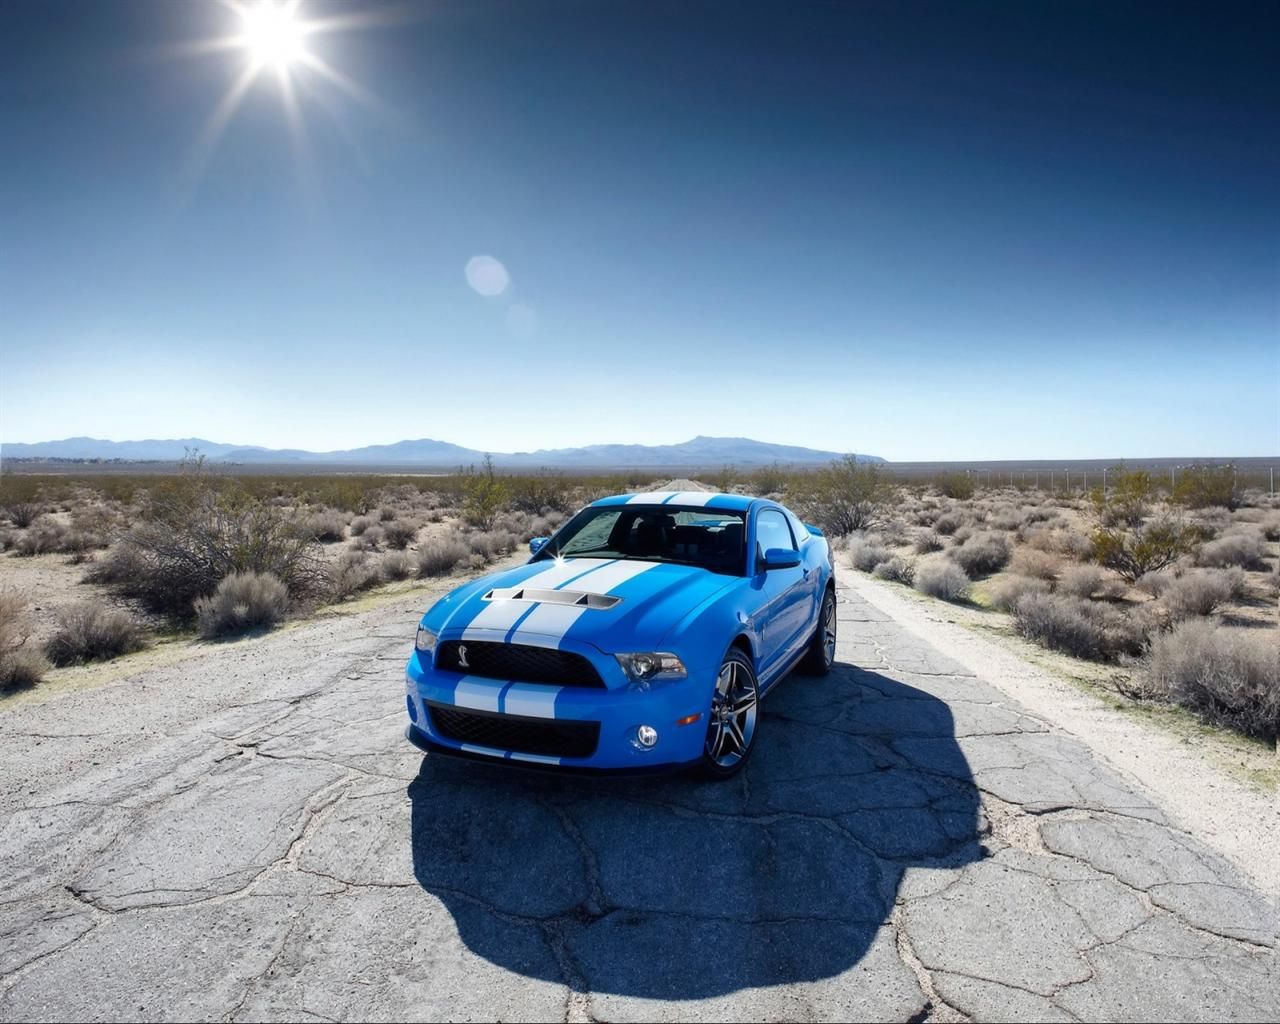 Shelby Mustang GT500 Desktop Wallpaper Background Desktop Wallpaper 1280x1024